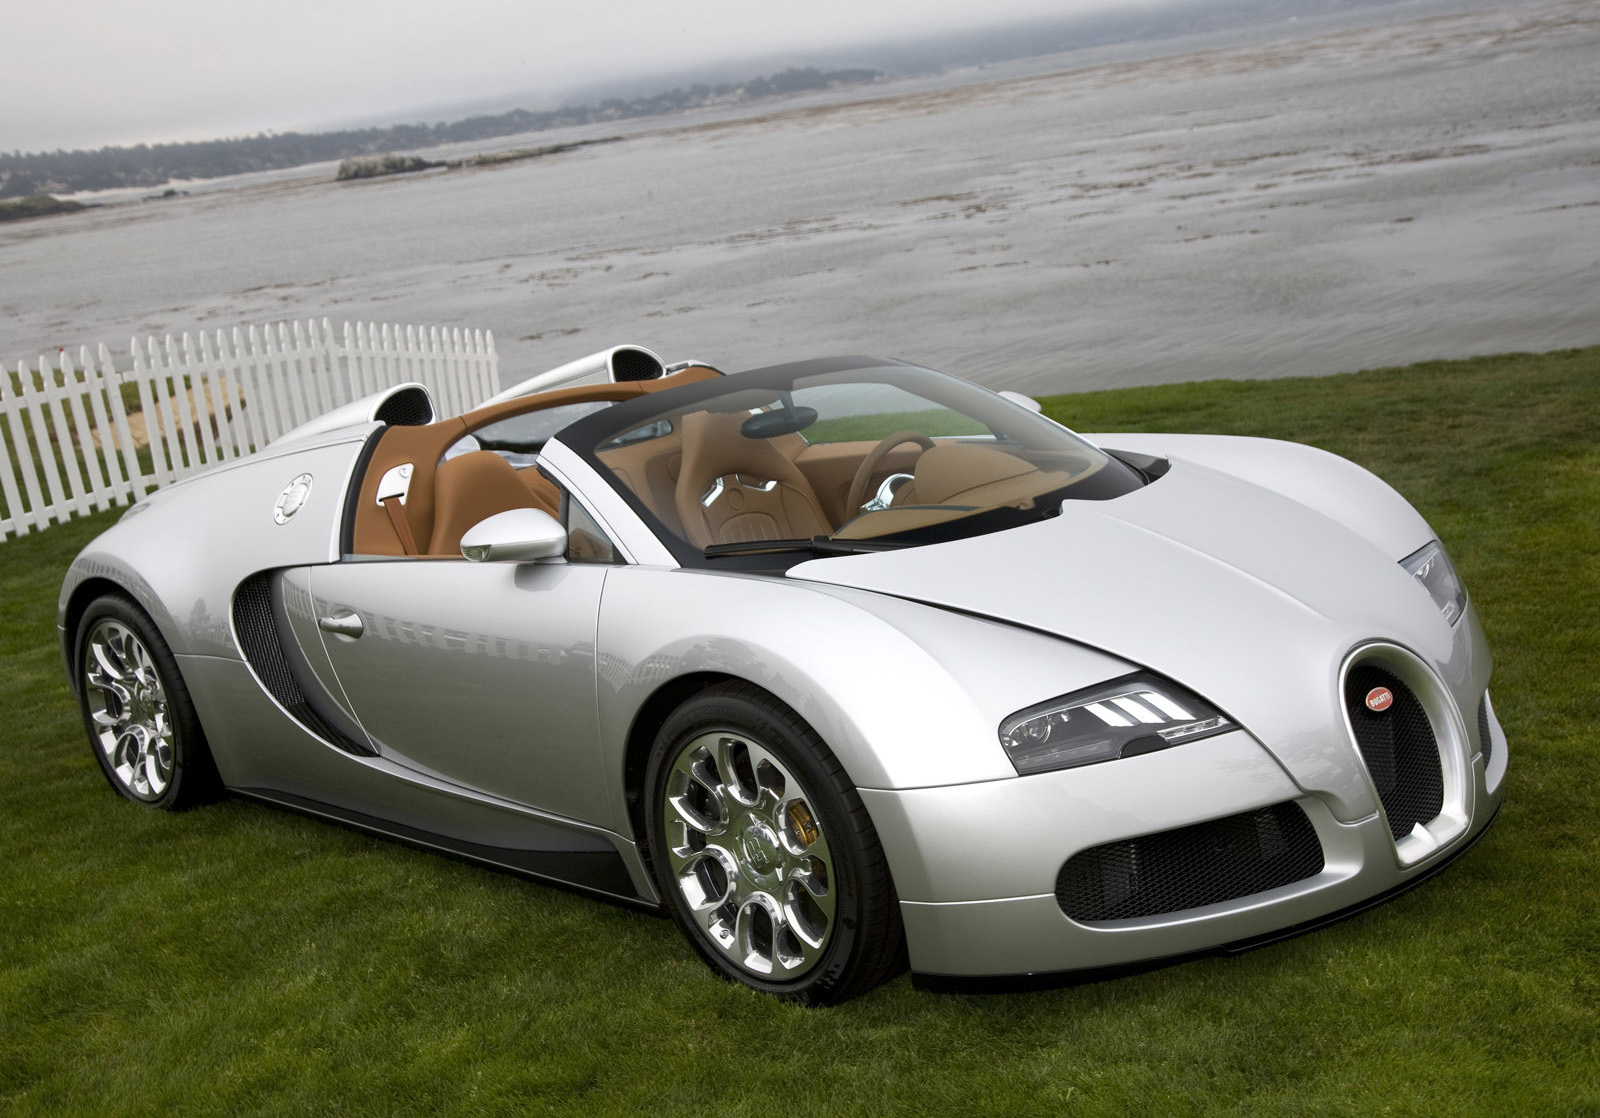 extreme machines bugatti veyron launched in india. Black Bedroom Furniture Sets. Home Design Ideas